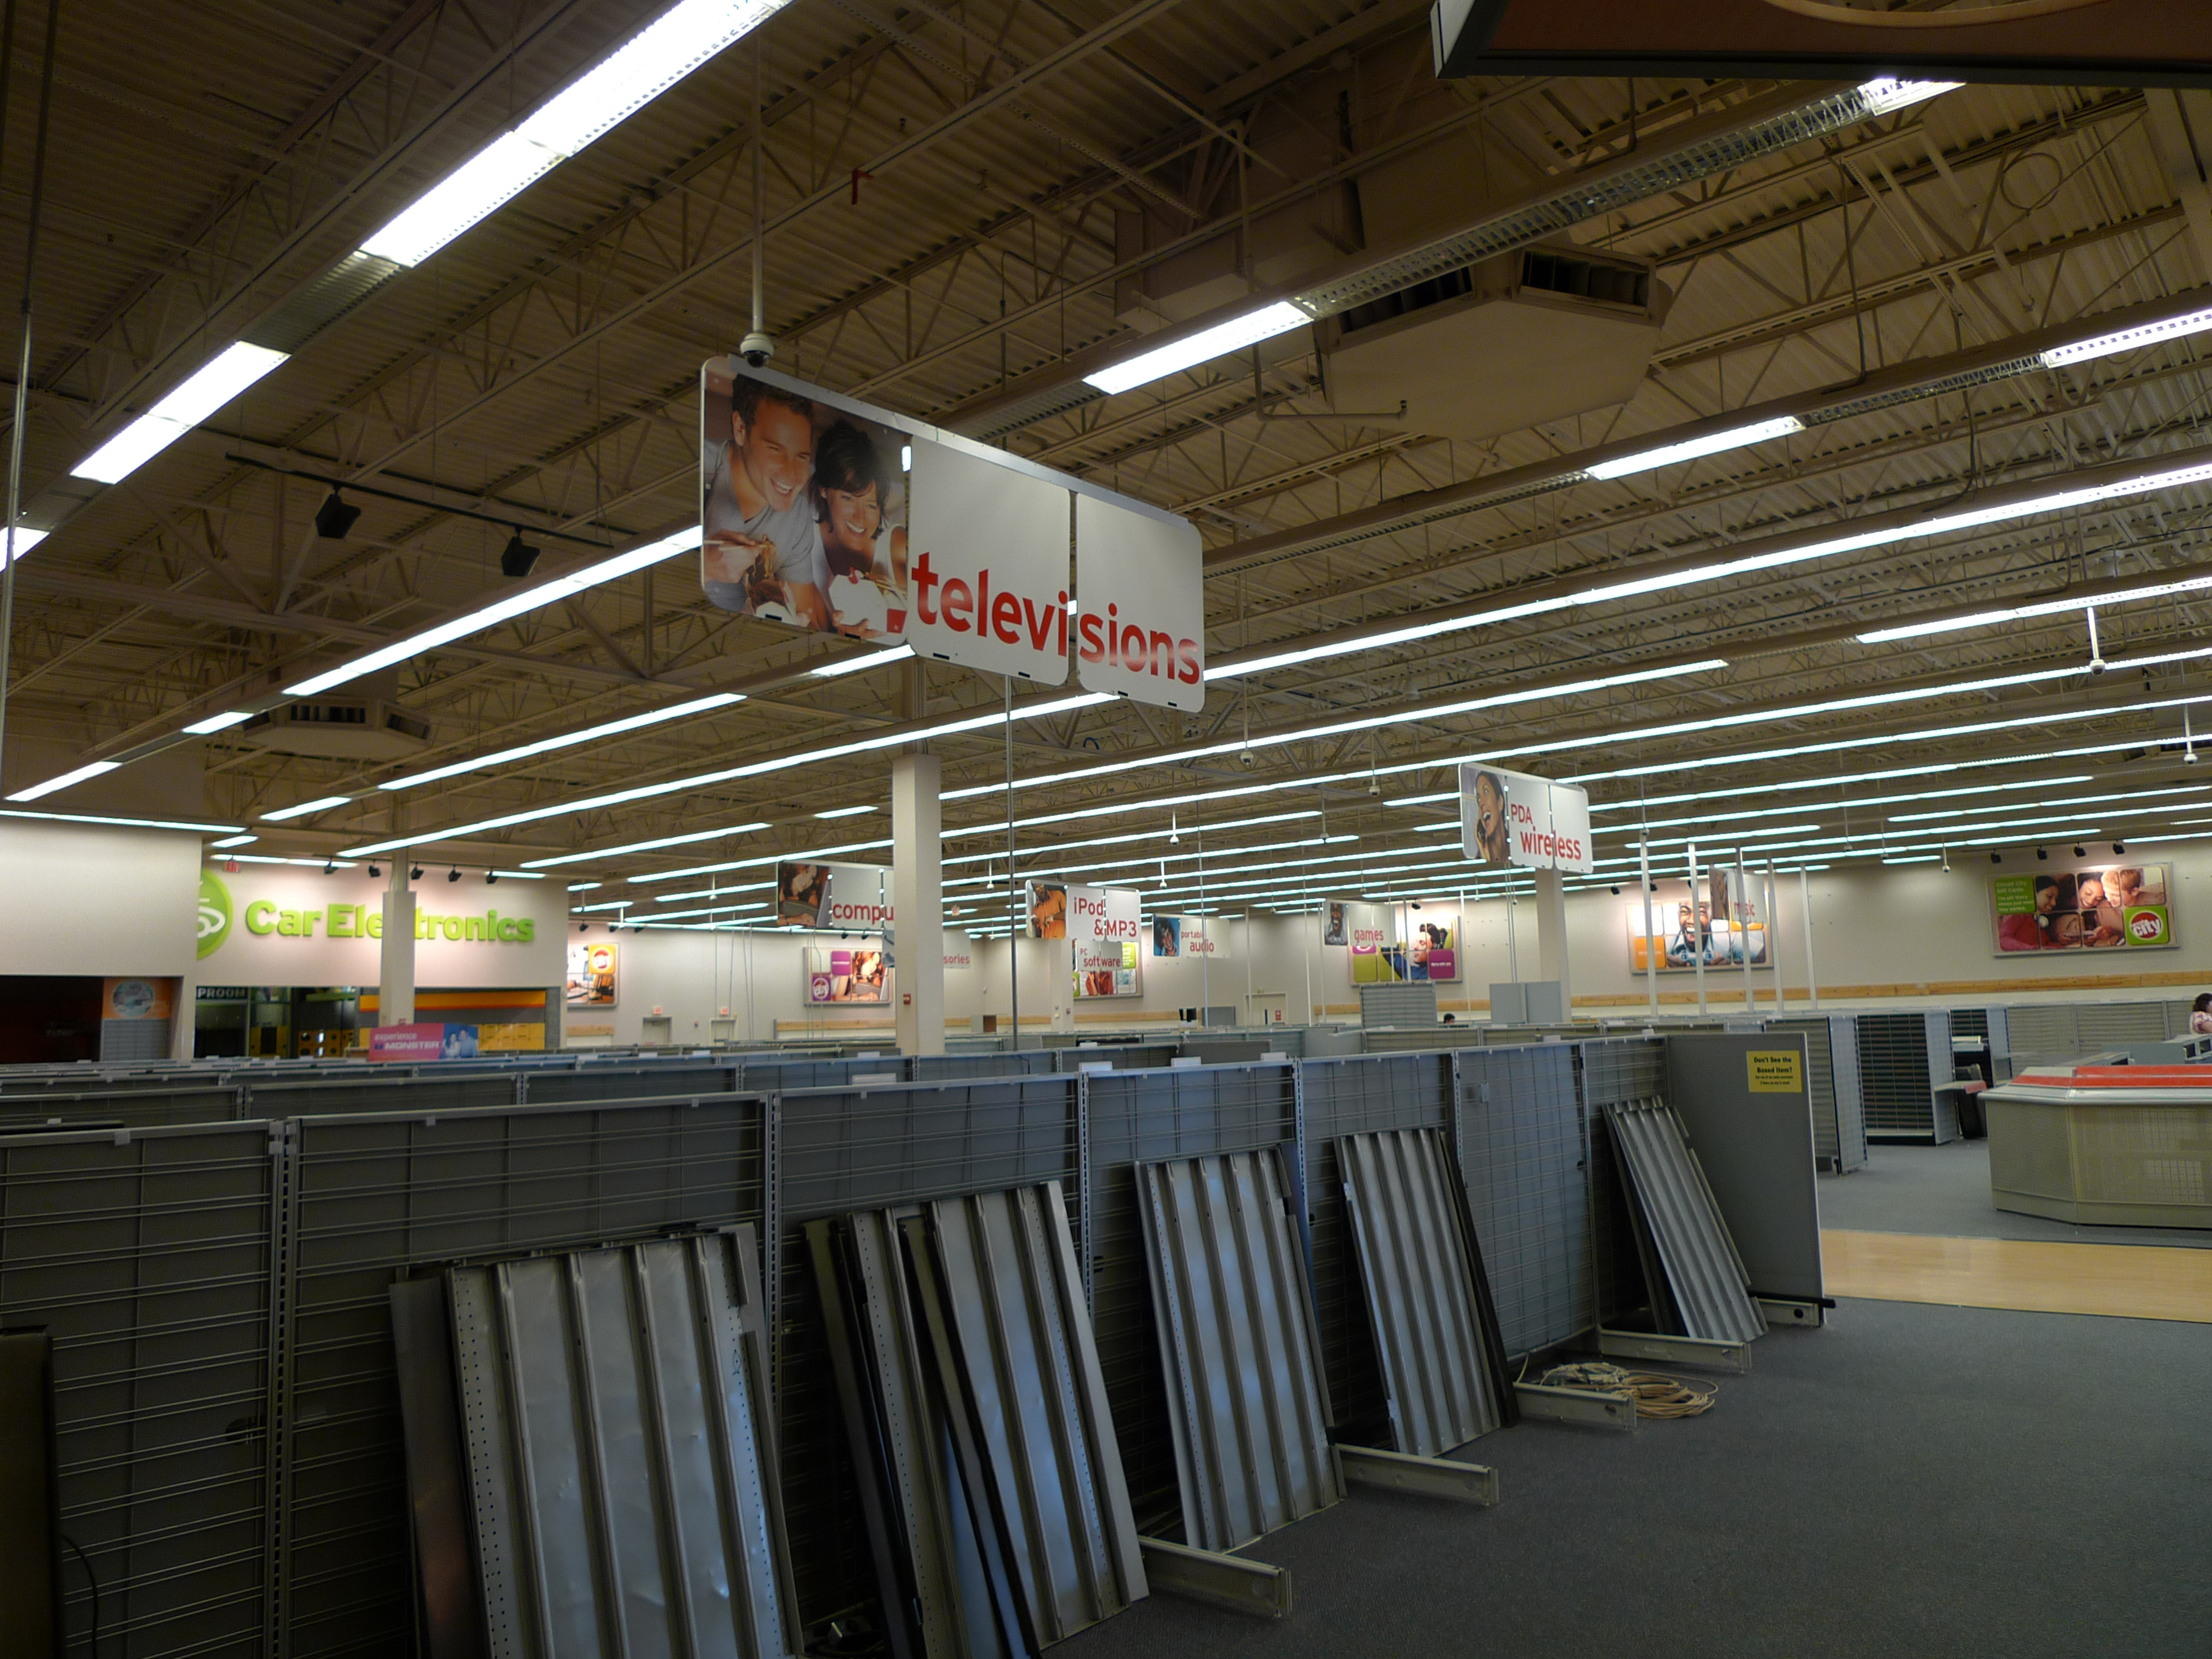 UPDATE 21 May 2010 The Harbison Location Is Going To Be A Baby Gear Store Called Buybuy From Web Site It Appears Related Bed Bath